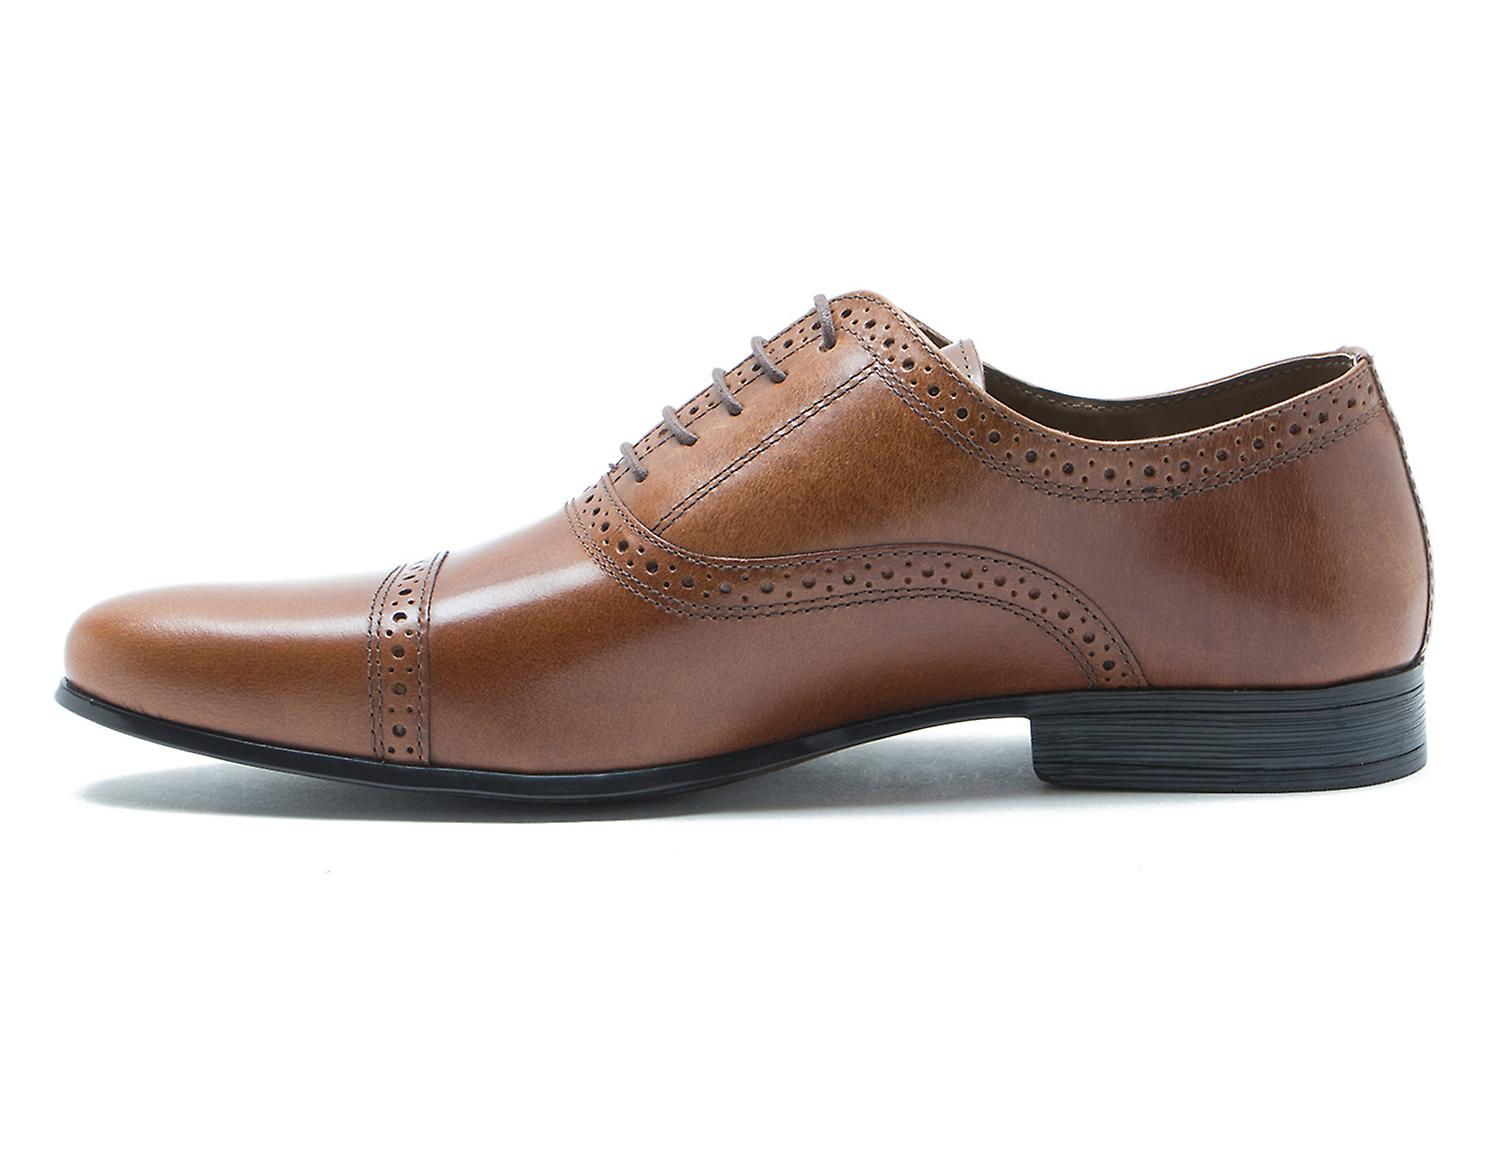 Paperasserie Fenny Tan Cuir robe lacets chaussures